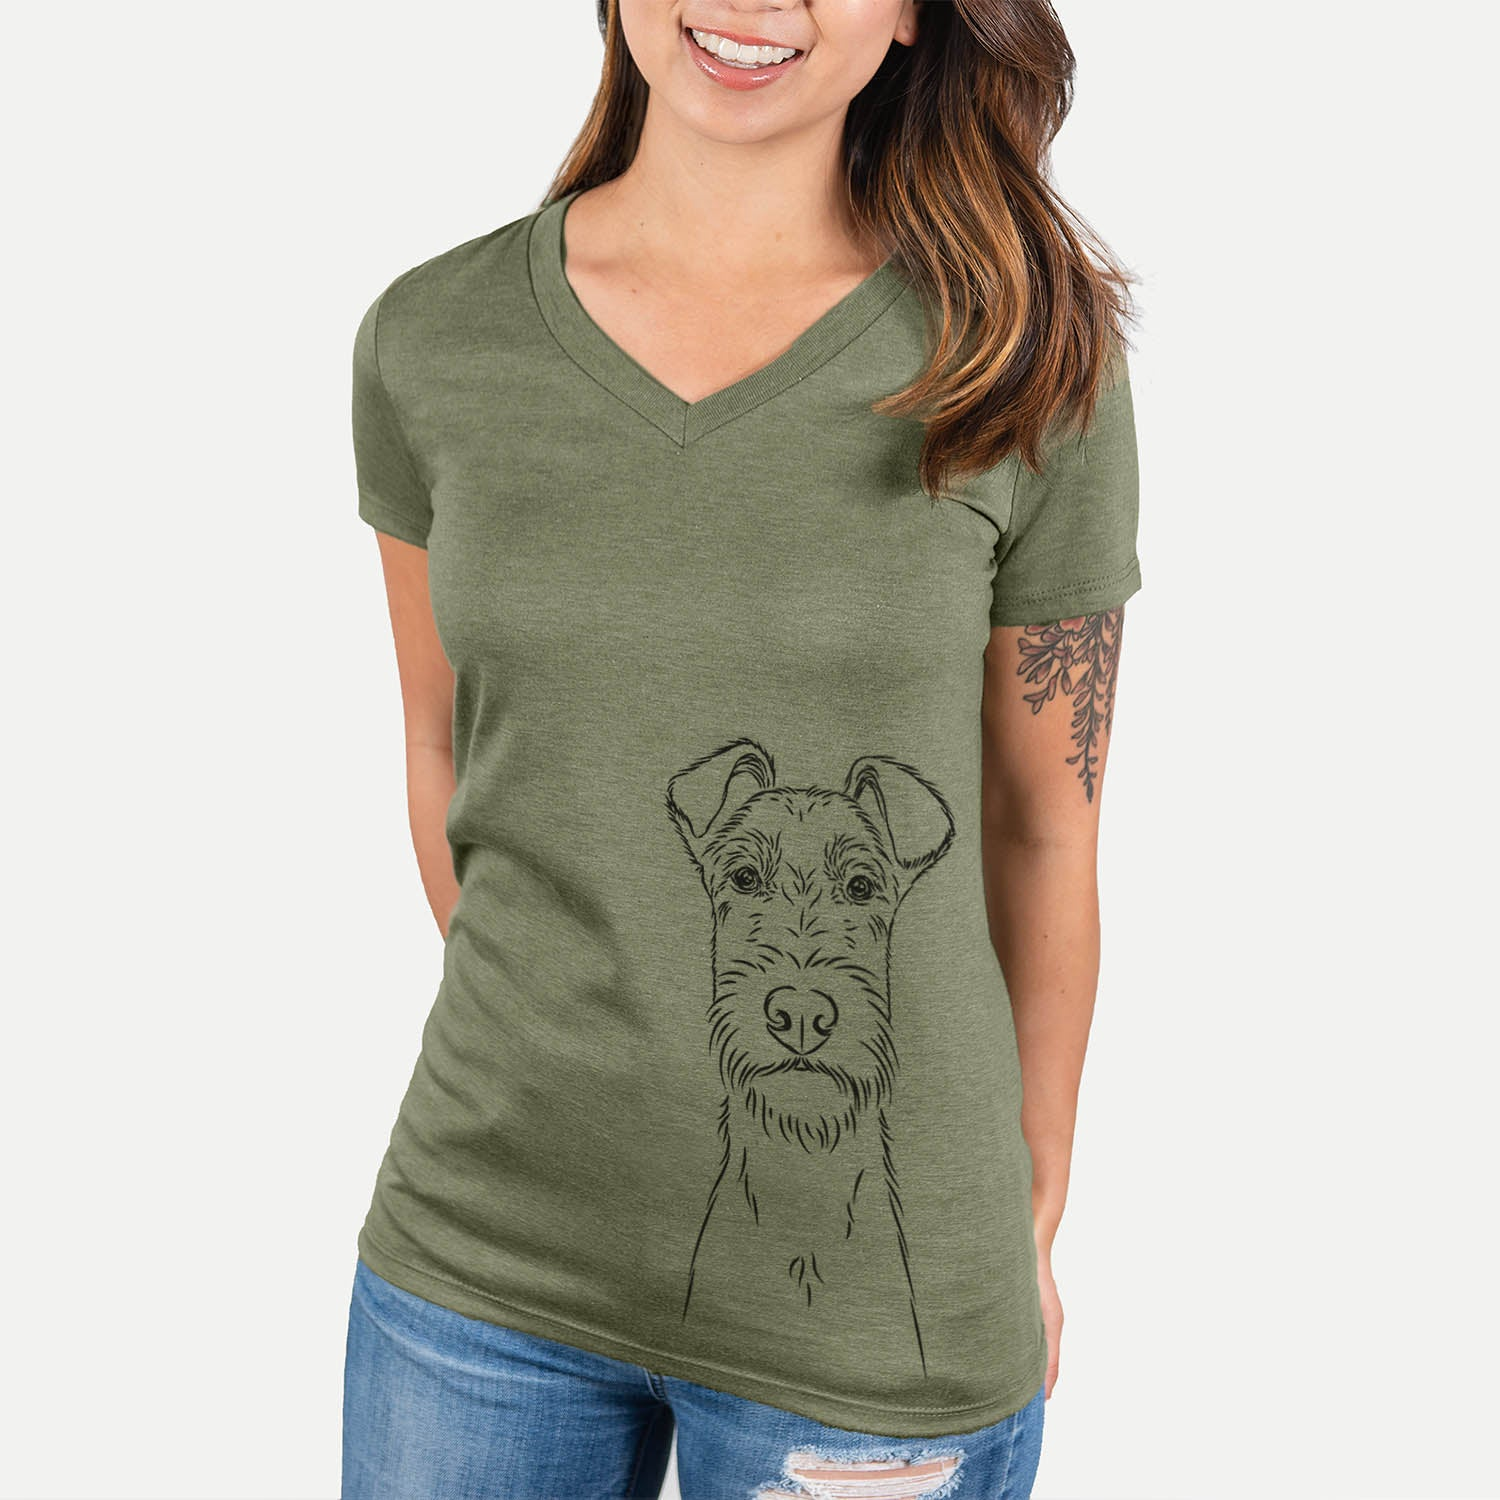 Connor the Irish Terrier - Women's Modern Fit V-neck Shirt